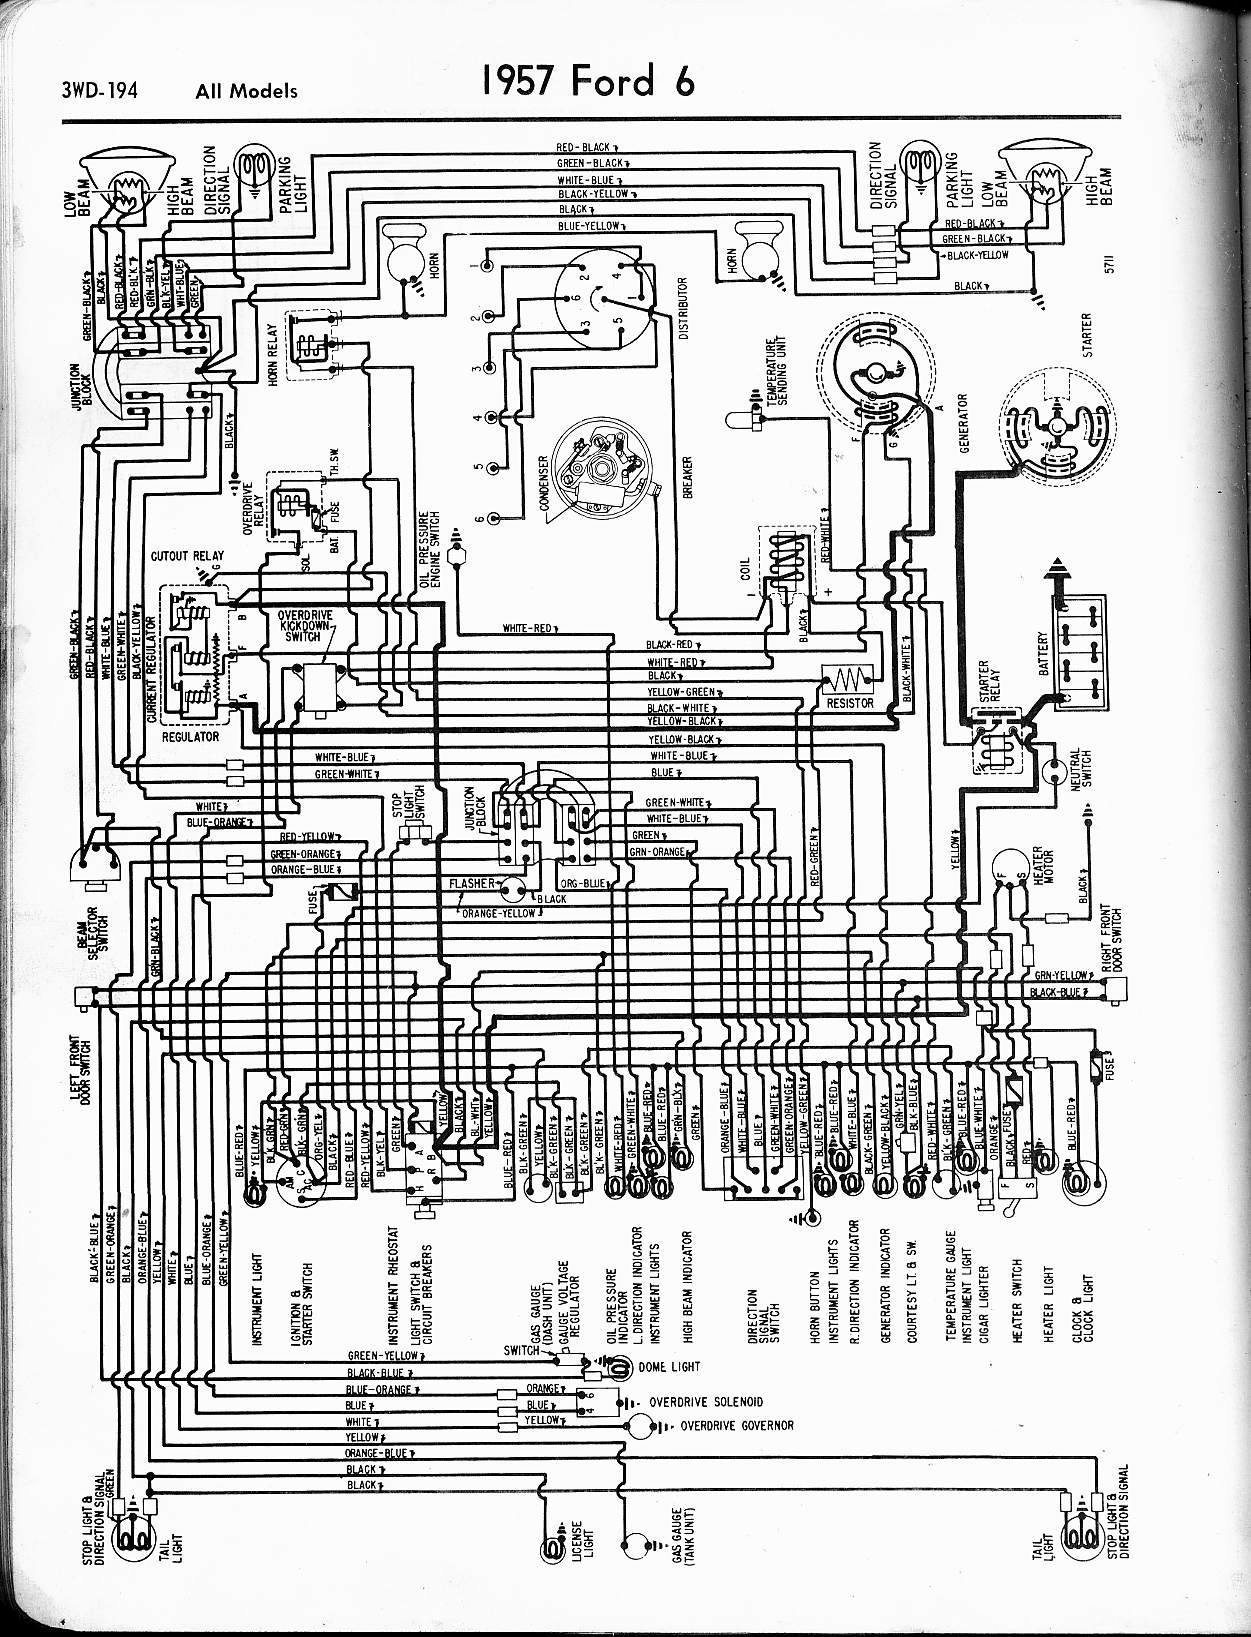 57_ford_wiring ford diagrams 1959 ford f100 wiring diagram at bayanpartner.co